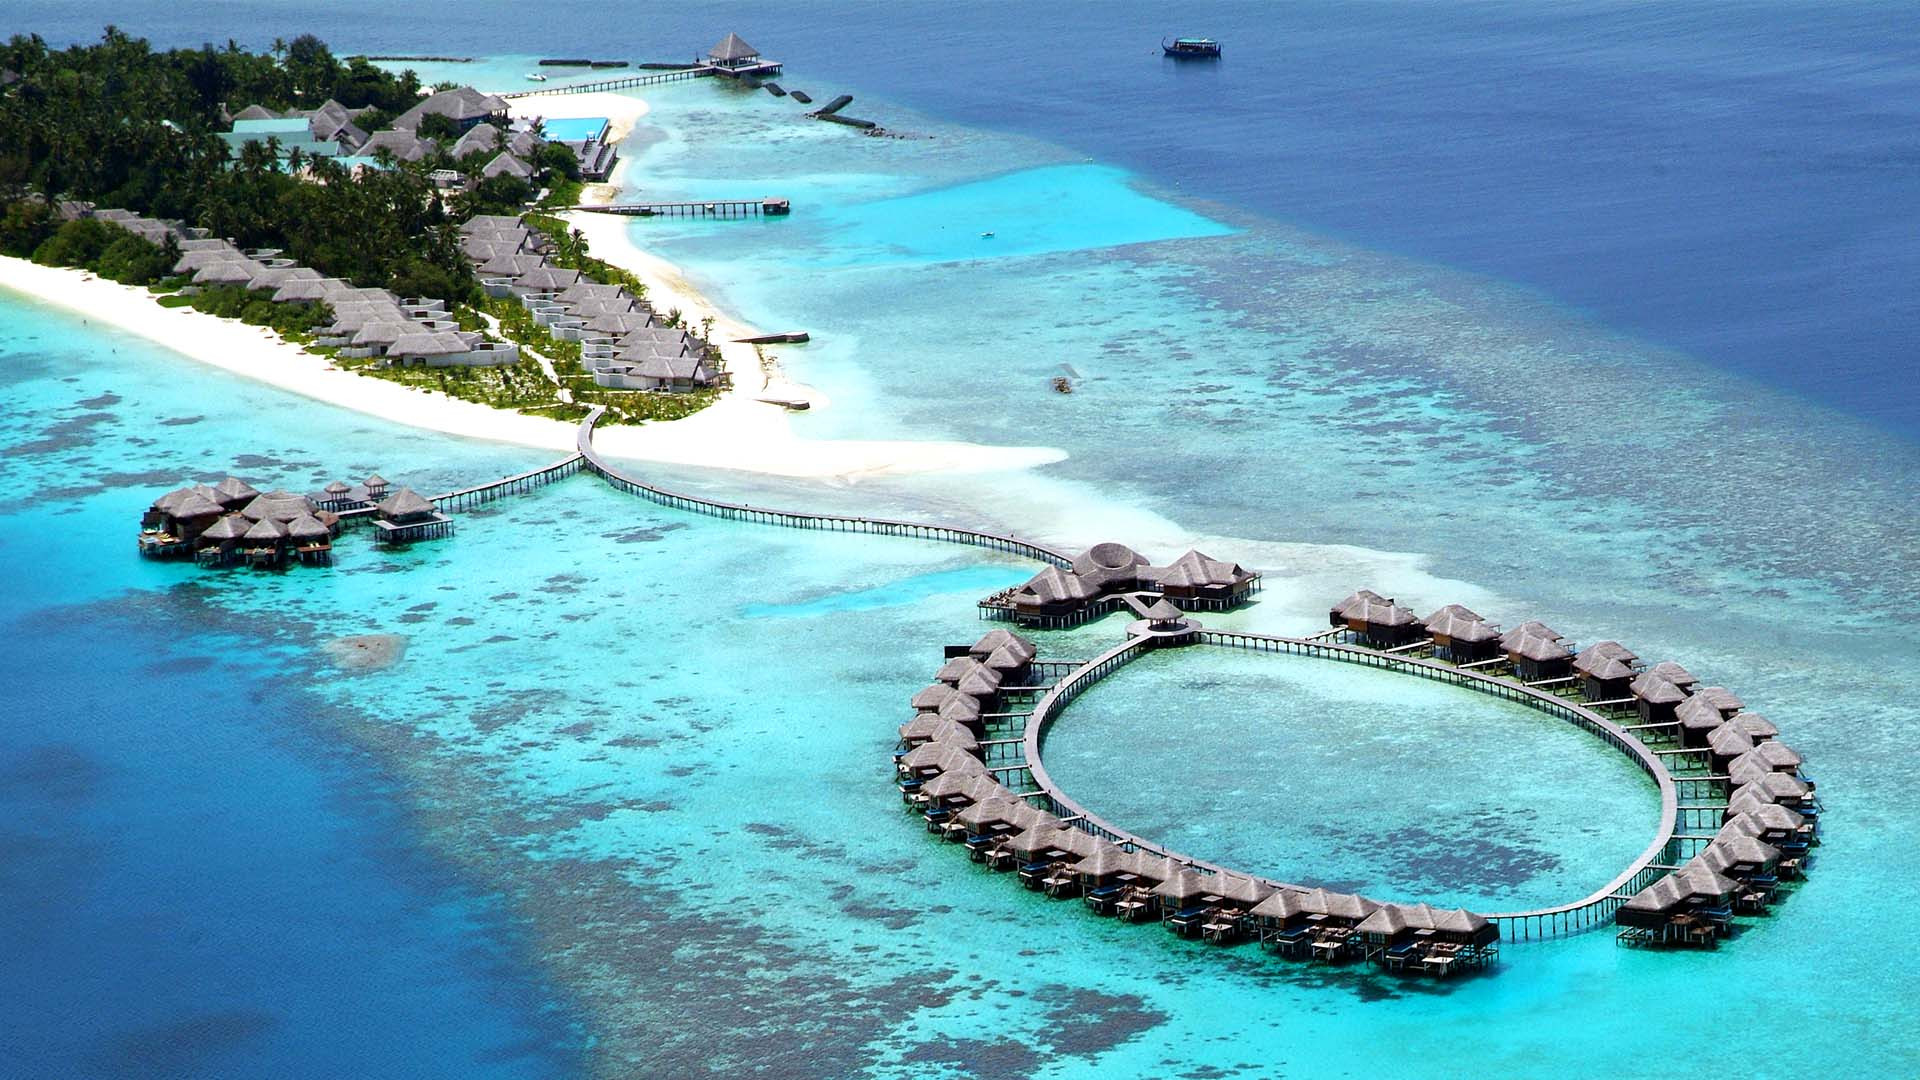 Aerial view of Coco Bodu Hithi Maldives